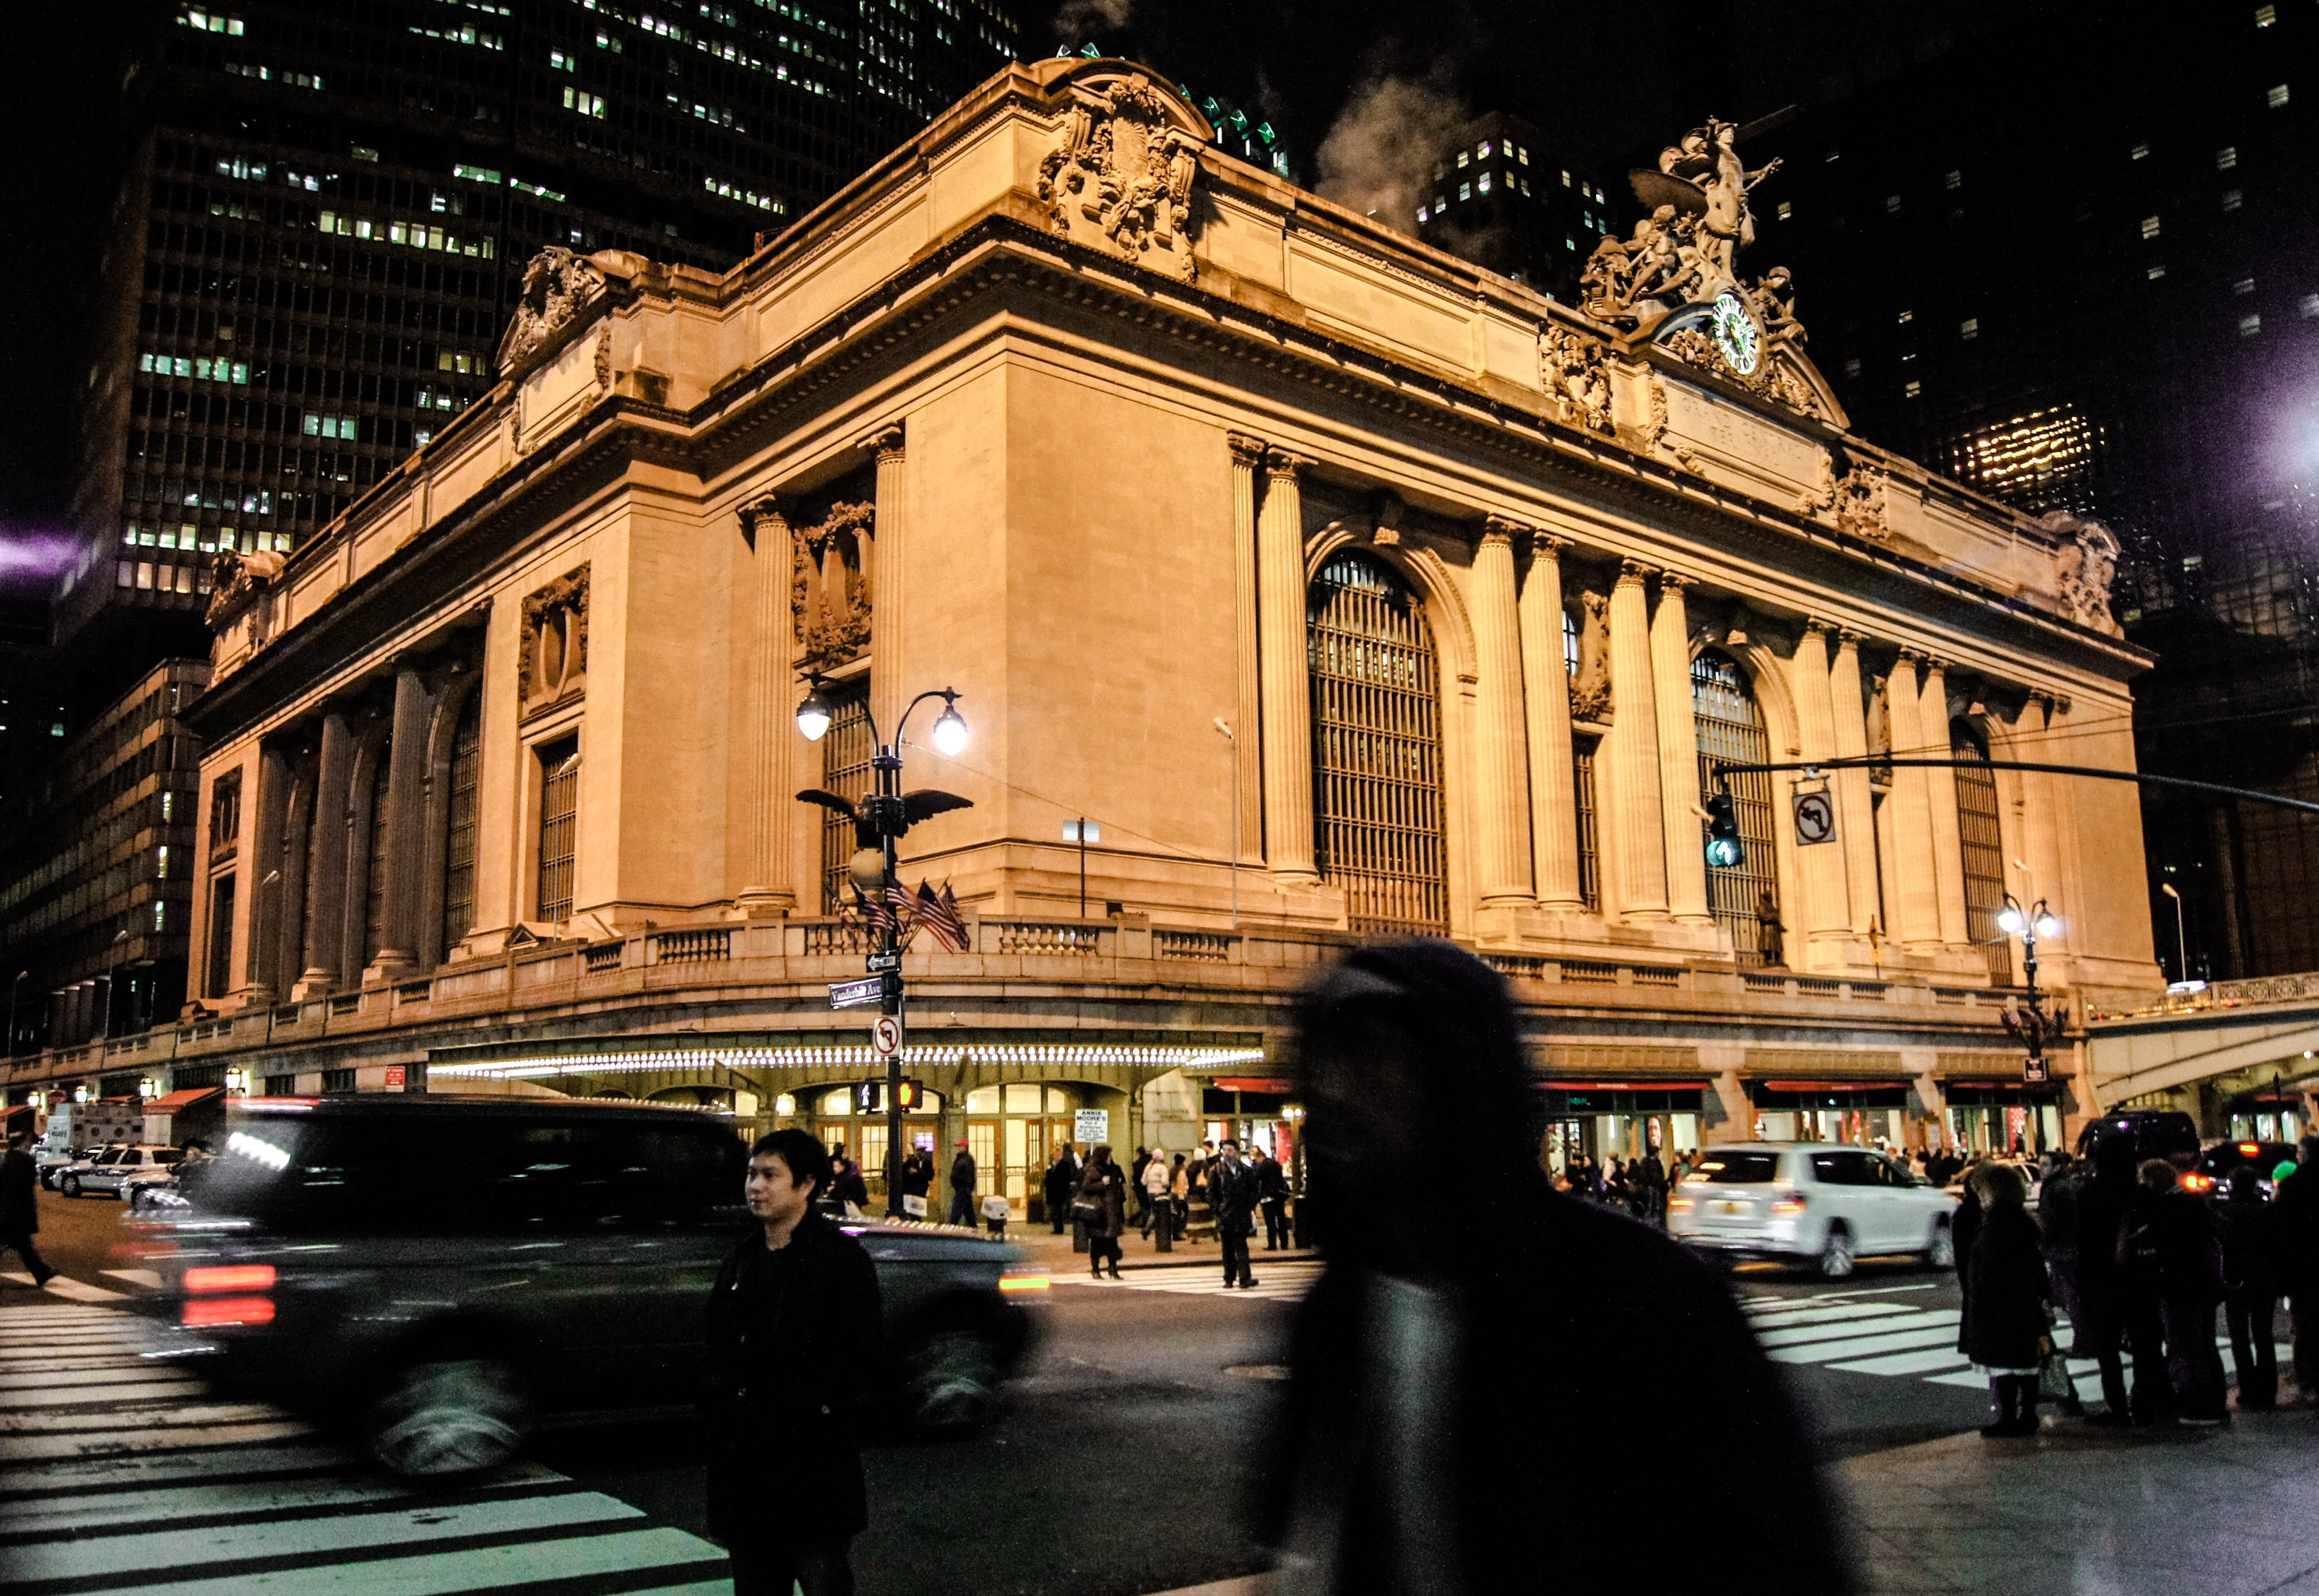 Free stock photo of train, train station, grand central station